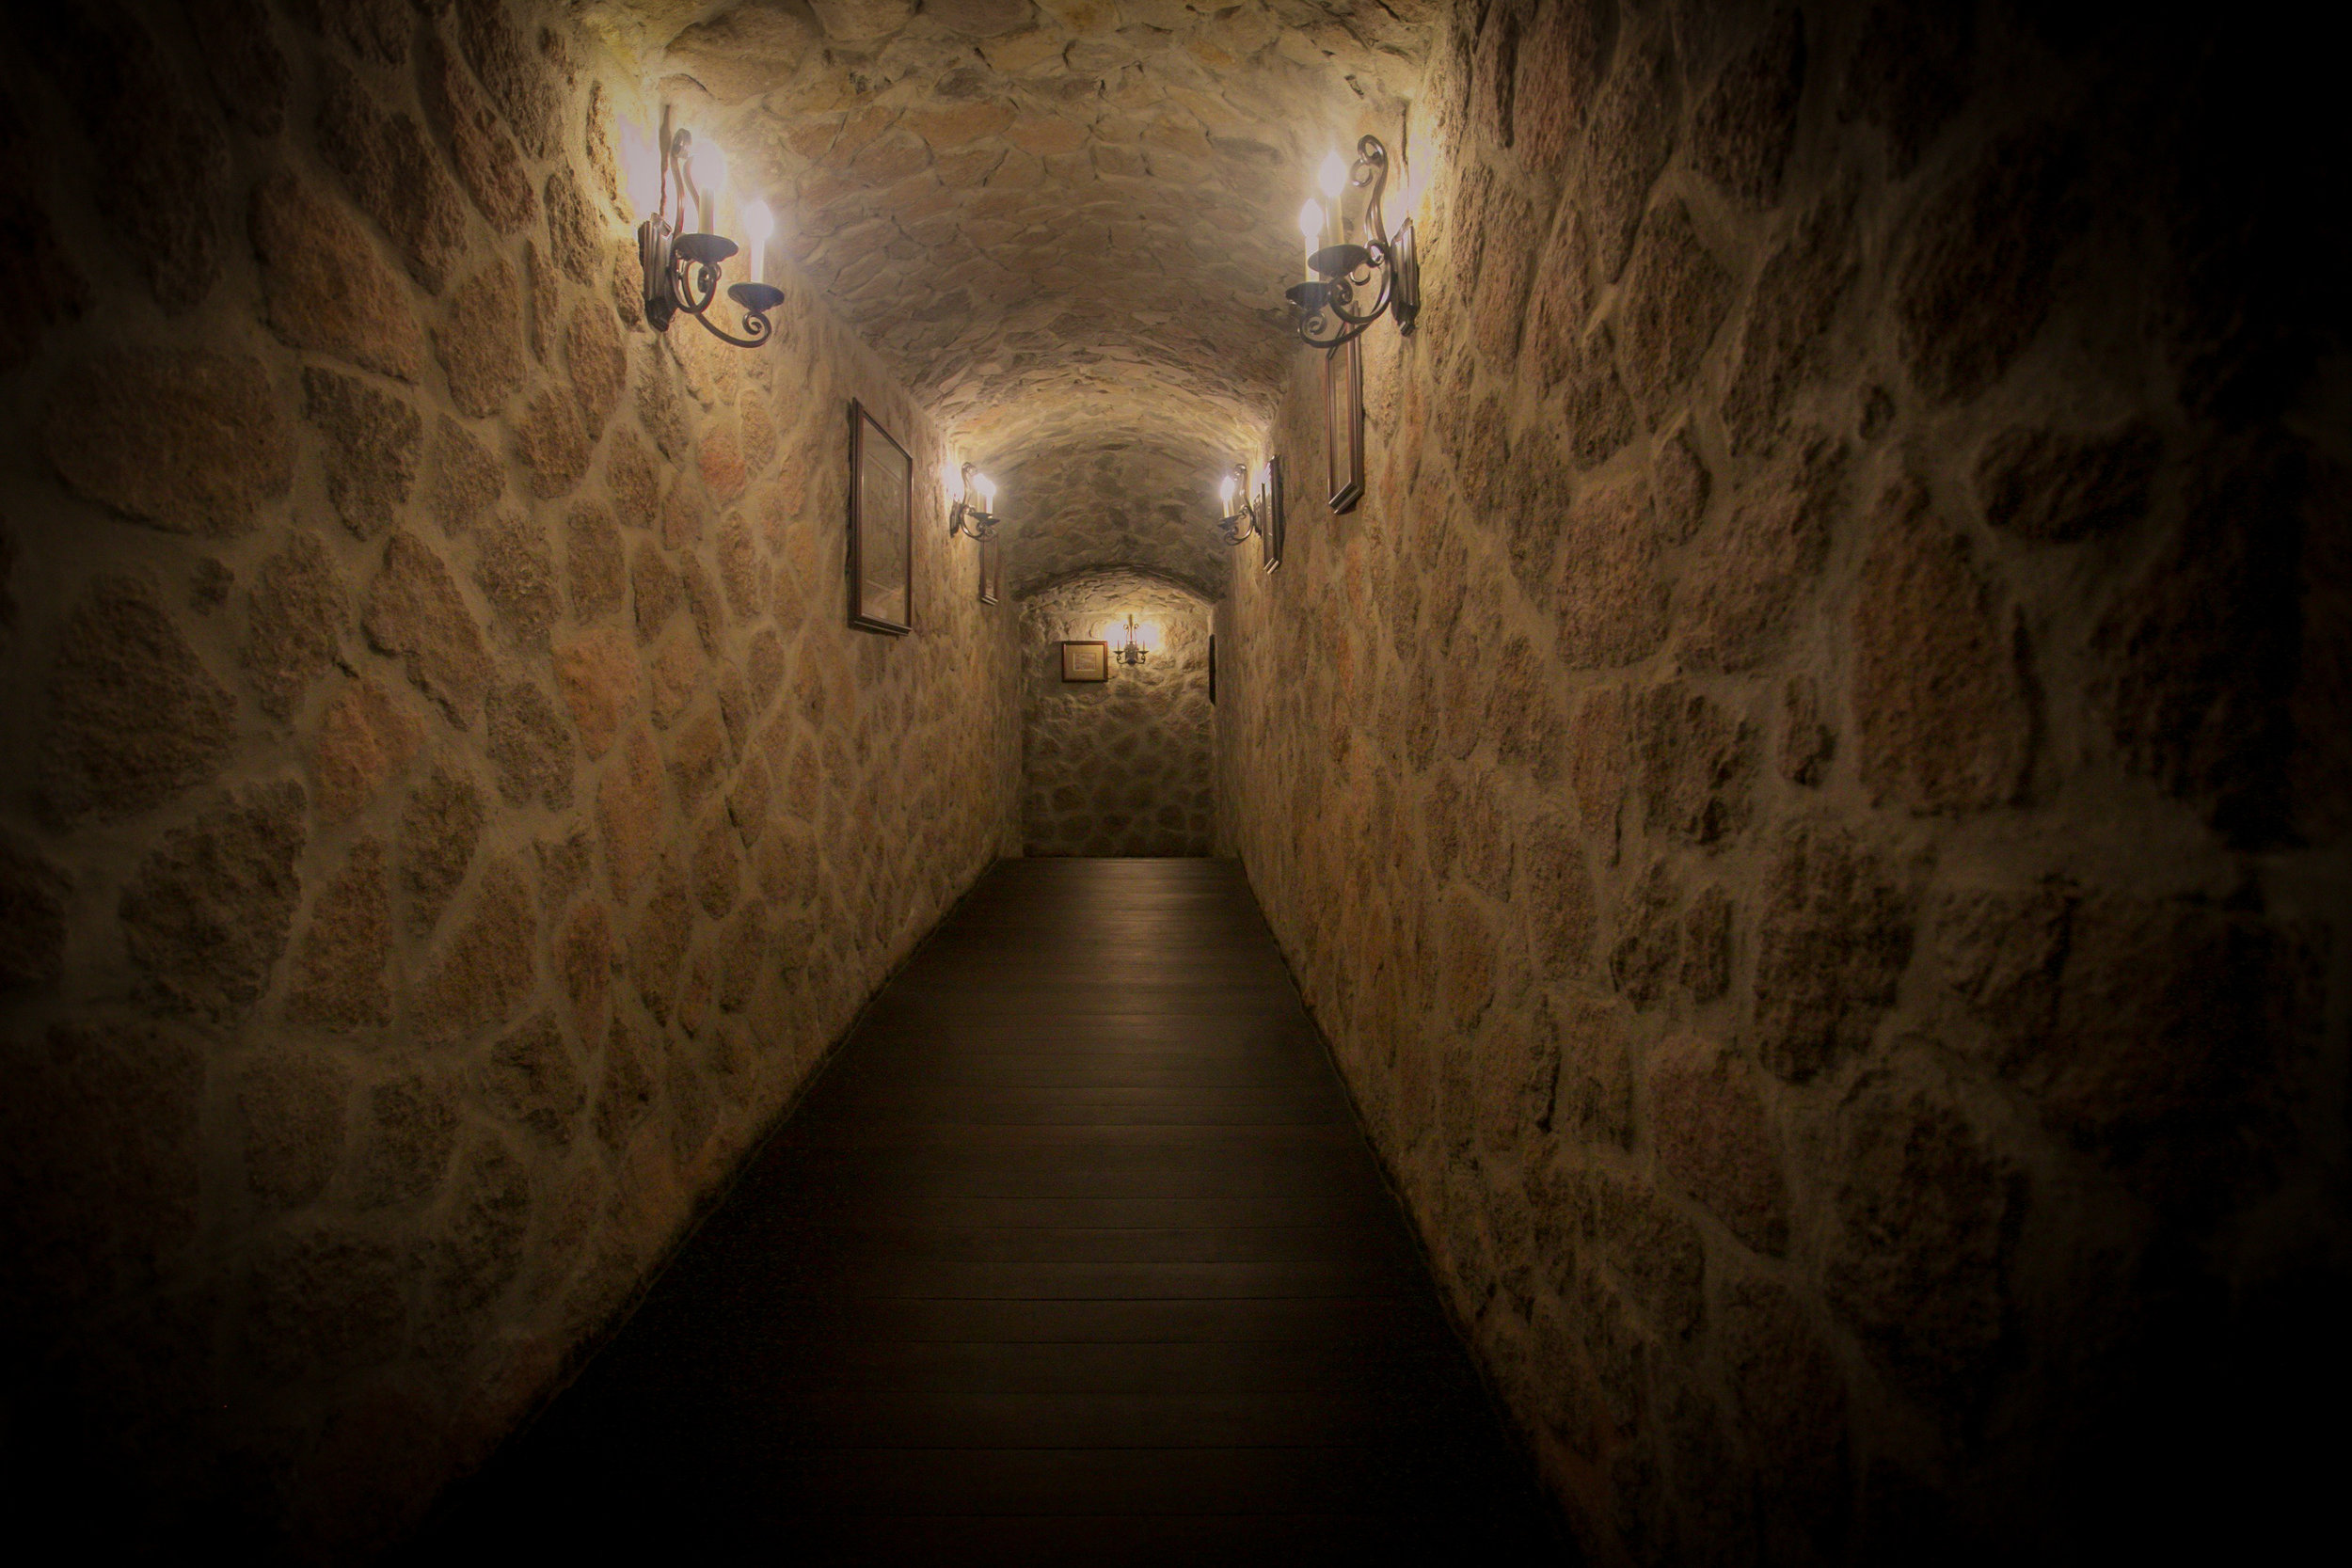 Don't forget to indulge into their underground elegantly stated wine cellar which houses 500 world renowned wines, this is the hall leading to their cellar which reminds you of a classic old world chateau. They do provide private wine and cheese pairing tastings which you can schedule during your stay. Photography Courtesy of The Aisle Photography